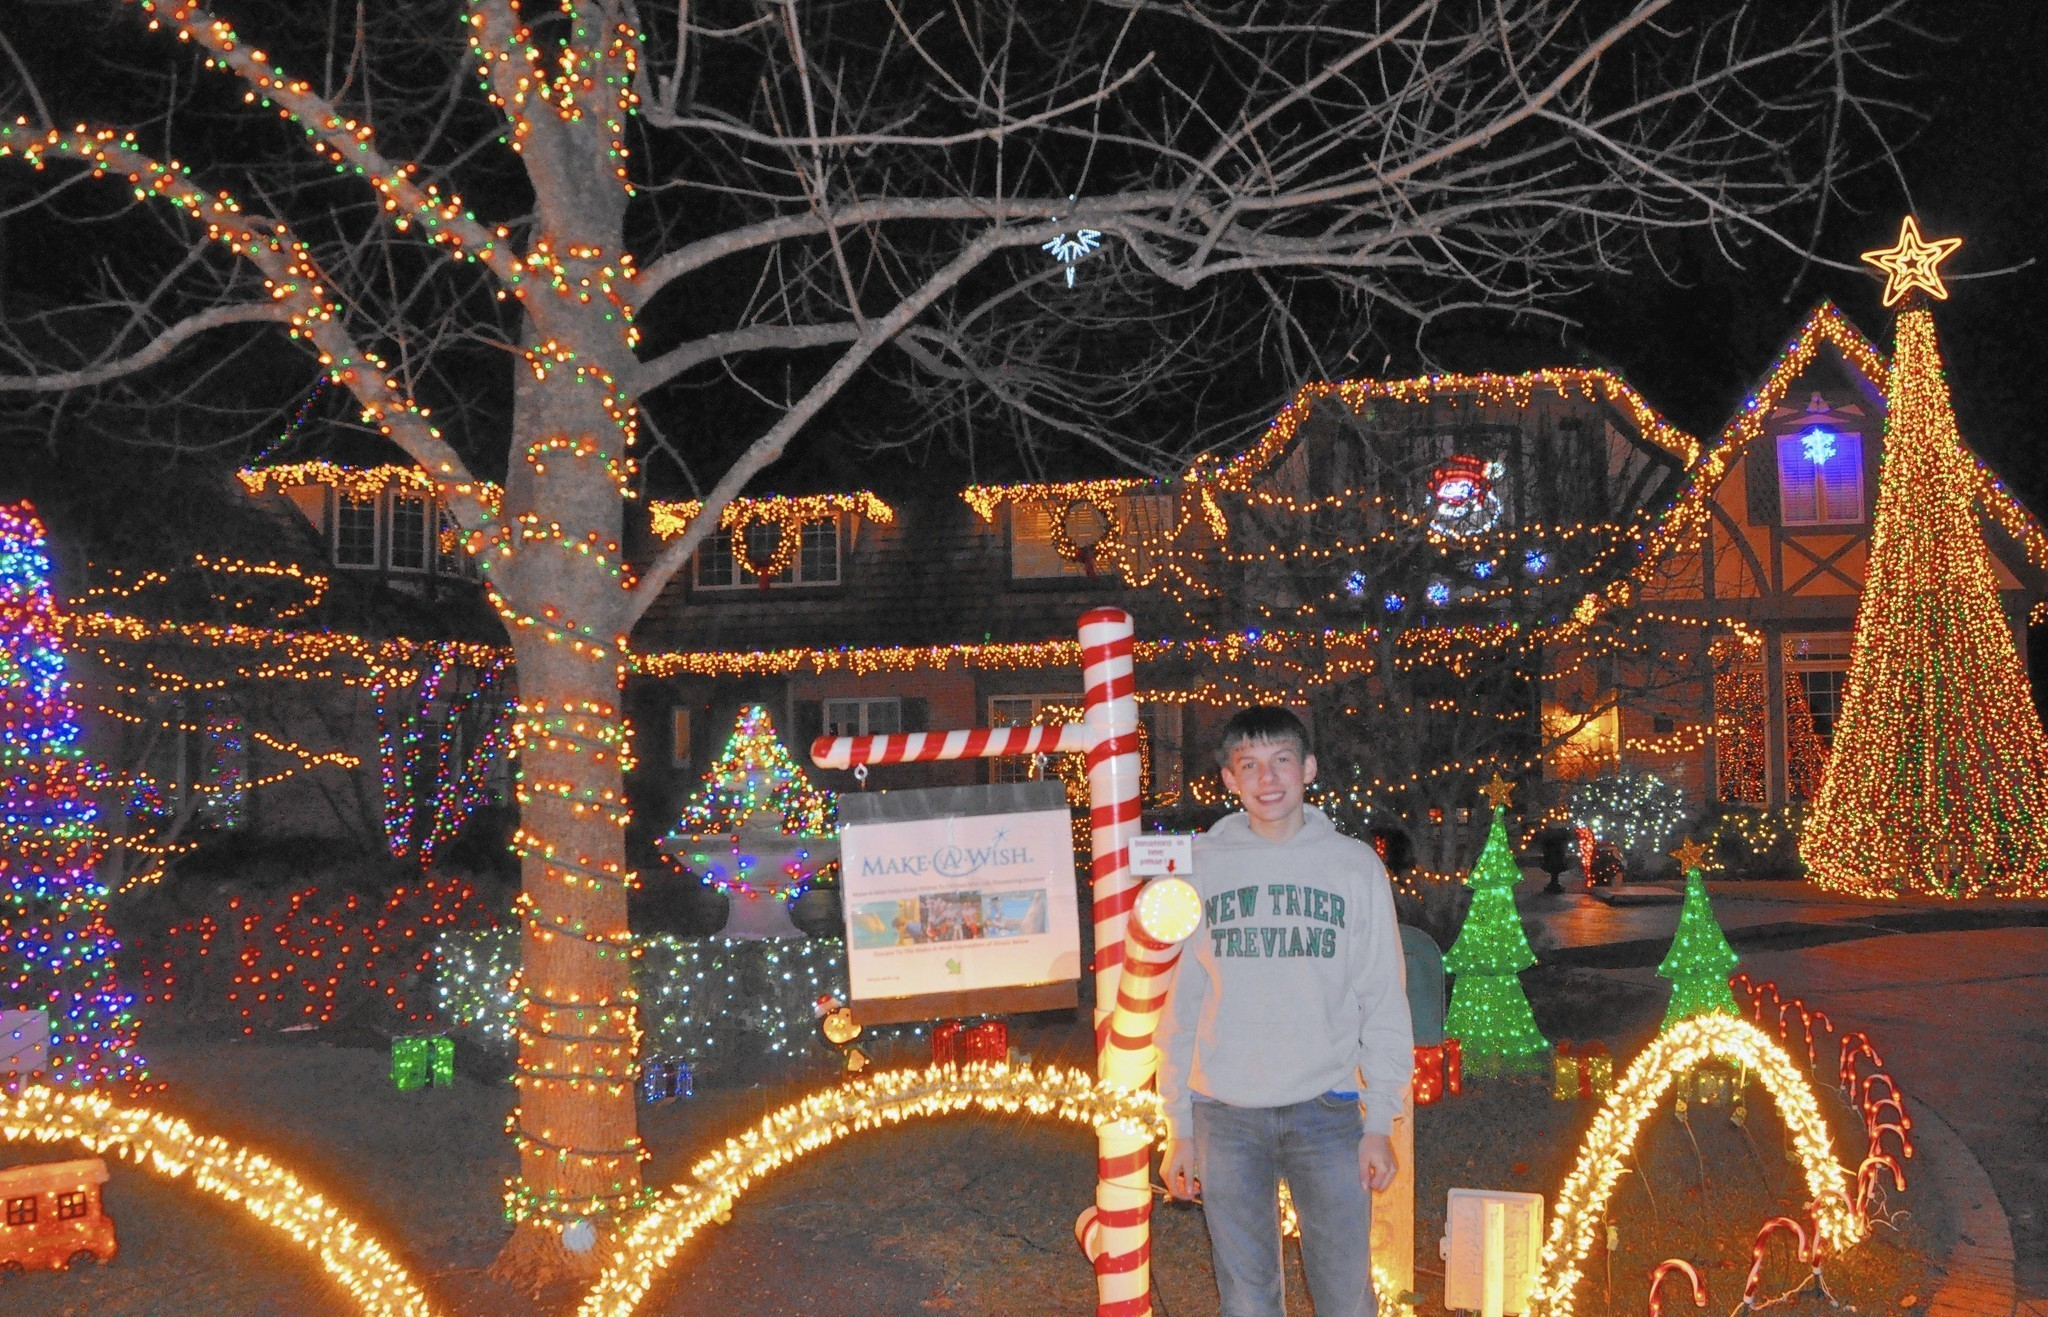 New Trier Students Holiday Lights Raise Cash For Charity Winnetka Talk